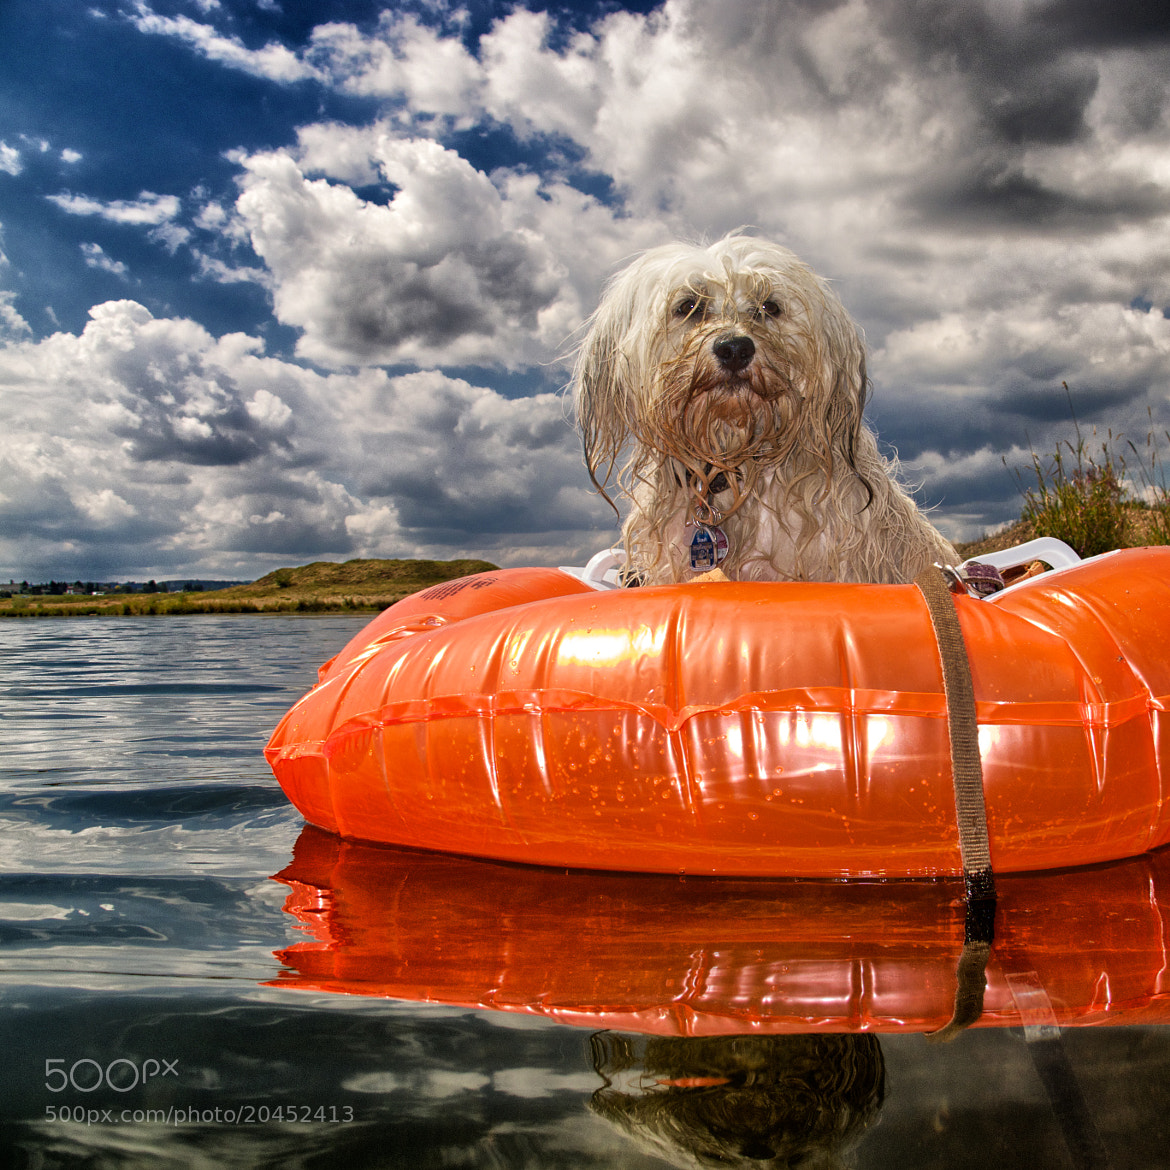 Photograph Hundeboot by Ralf Bitzer on 500px